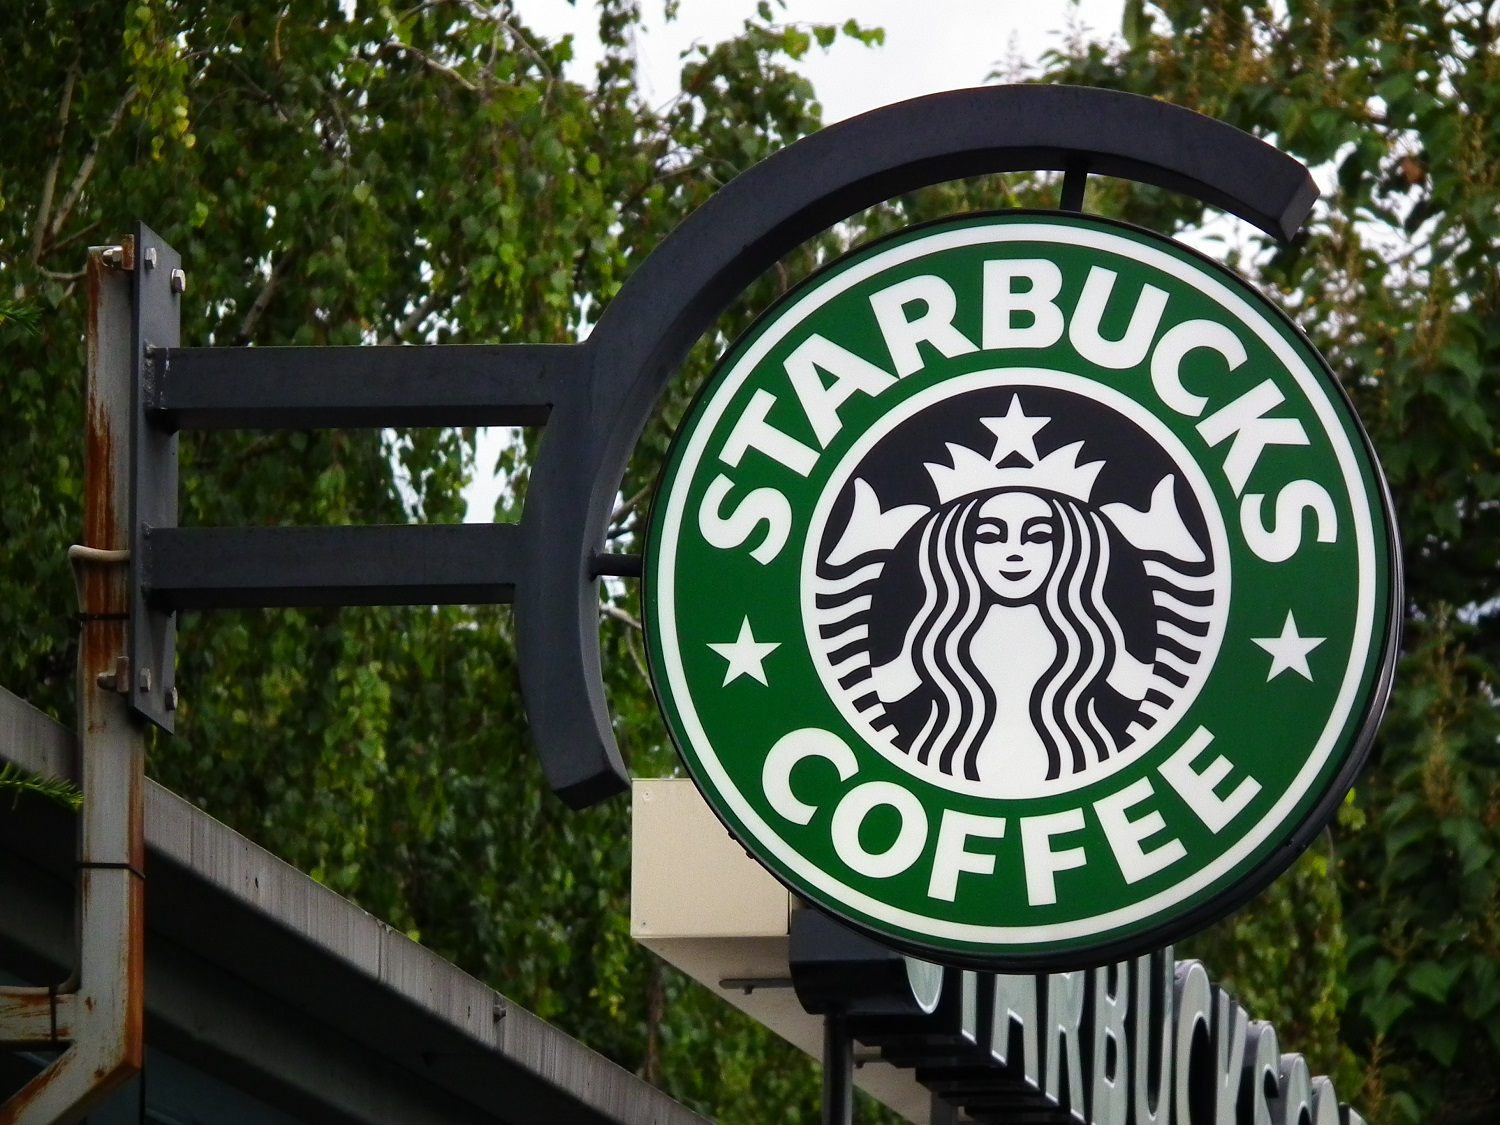 This pciture depicts the Starbucks logo